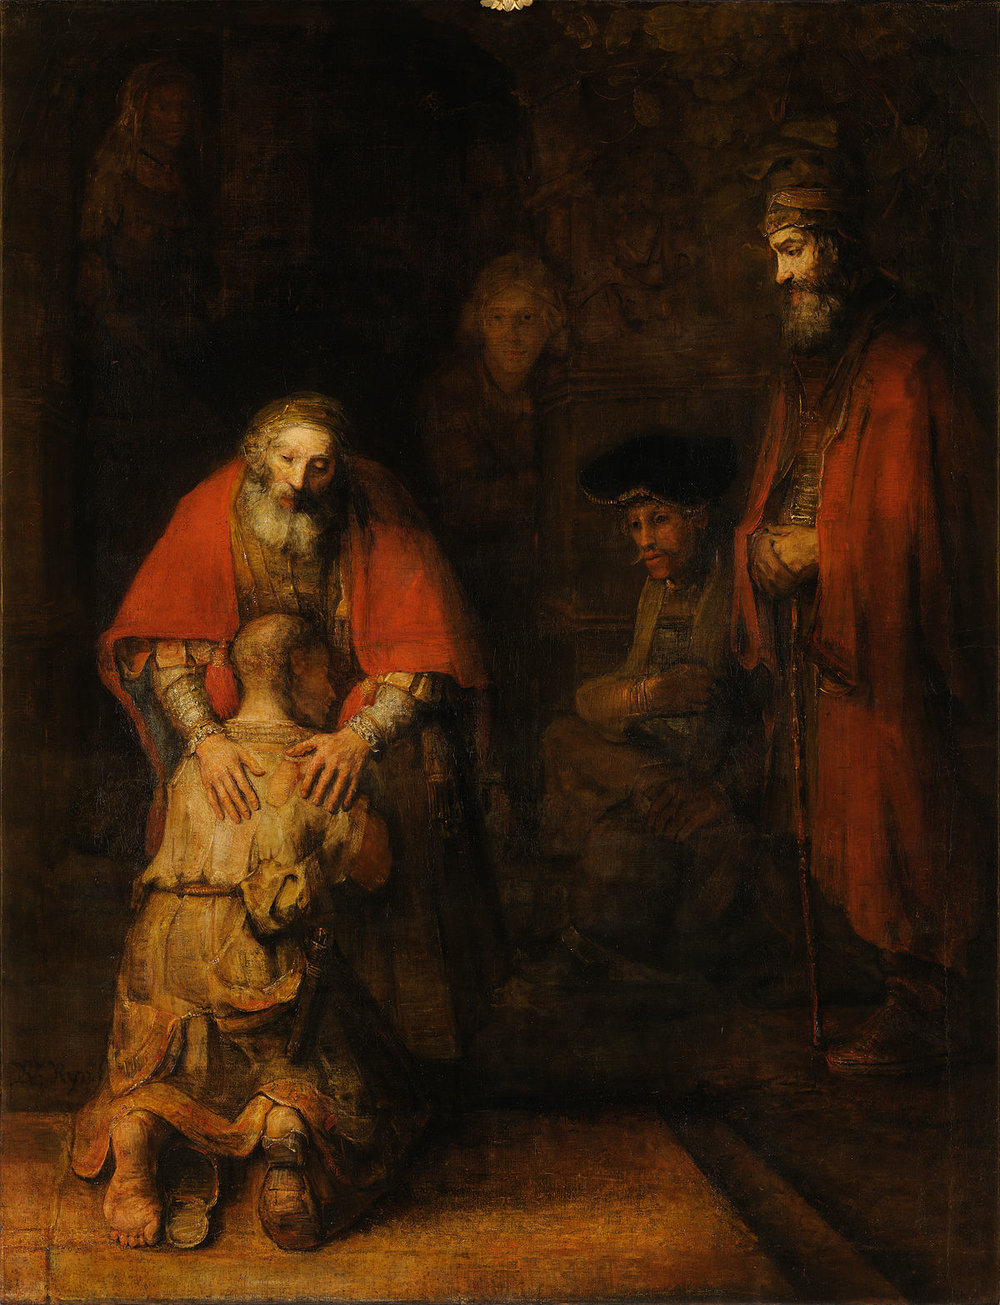 1200px-Rembrandt_Harmensz_van_Rijn_-_Return_of_the_Prodigal_Son_-_Google_Art_Project.jpg